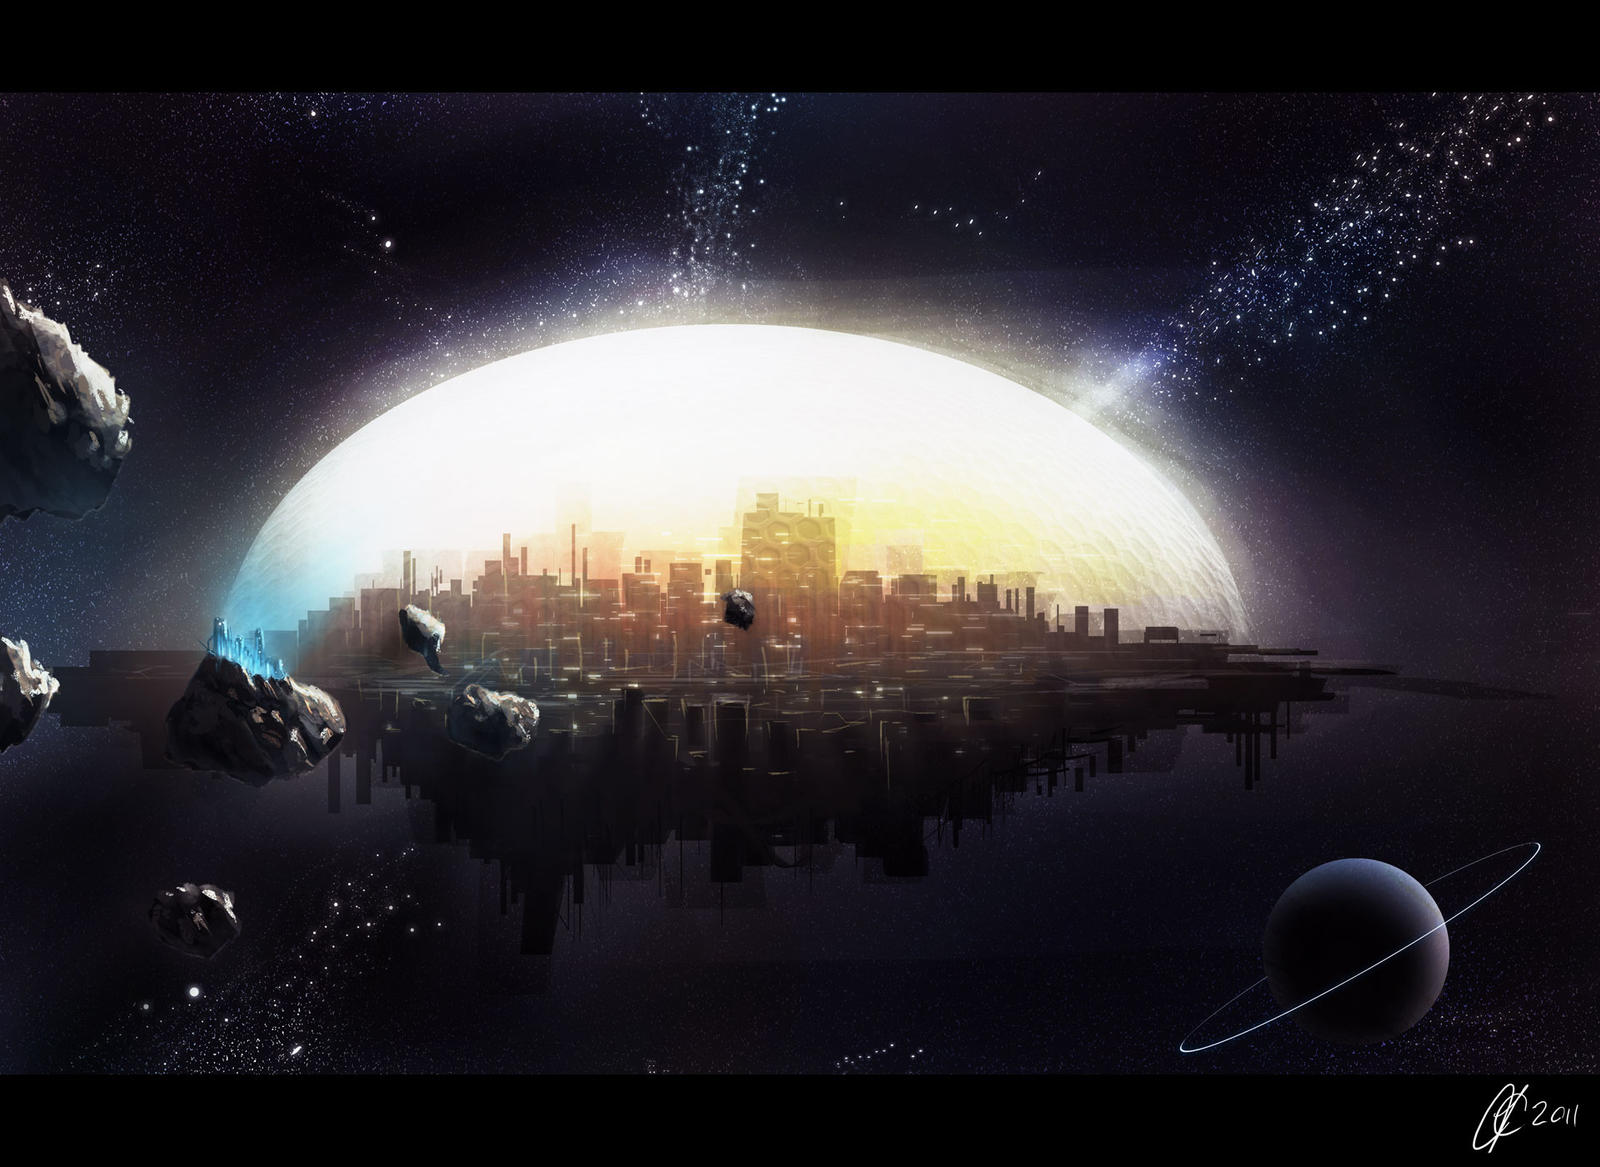 paintings planets and cities - photo #42